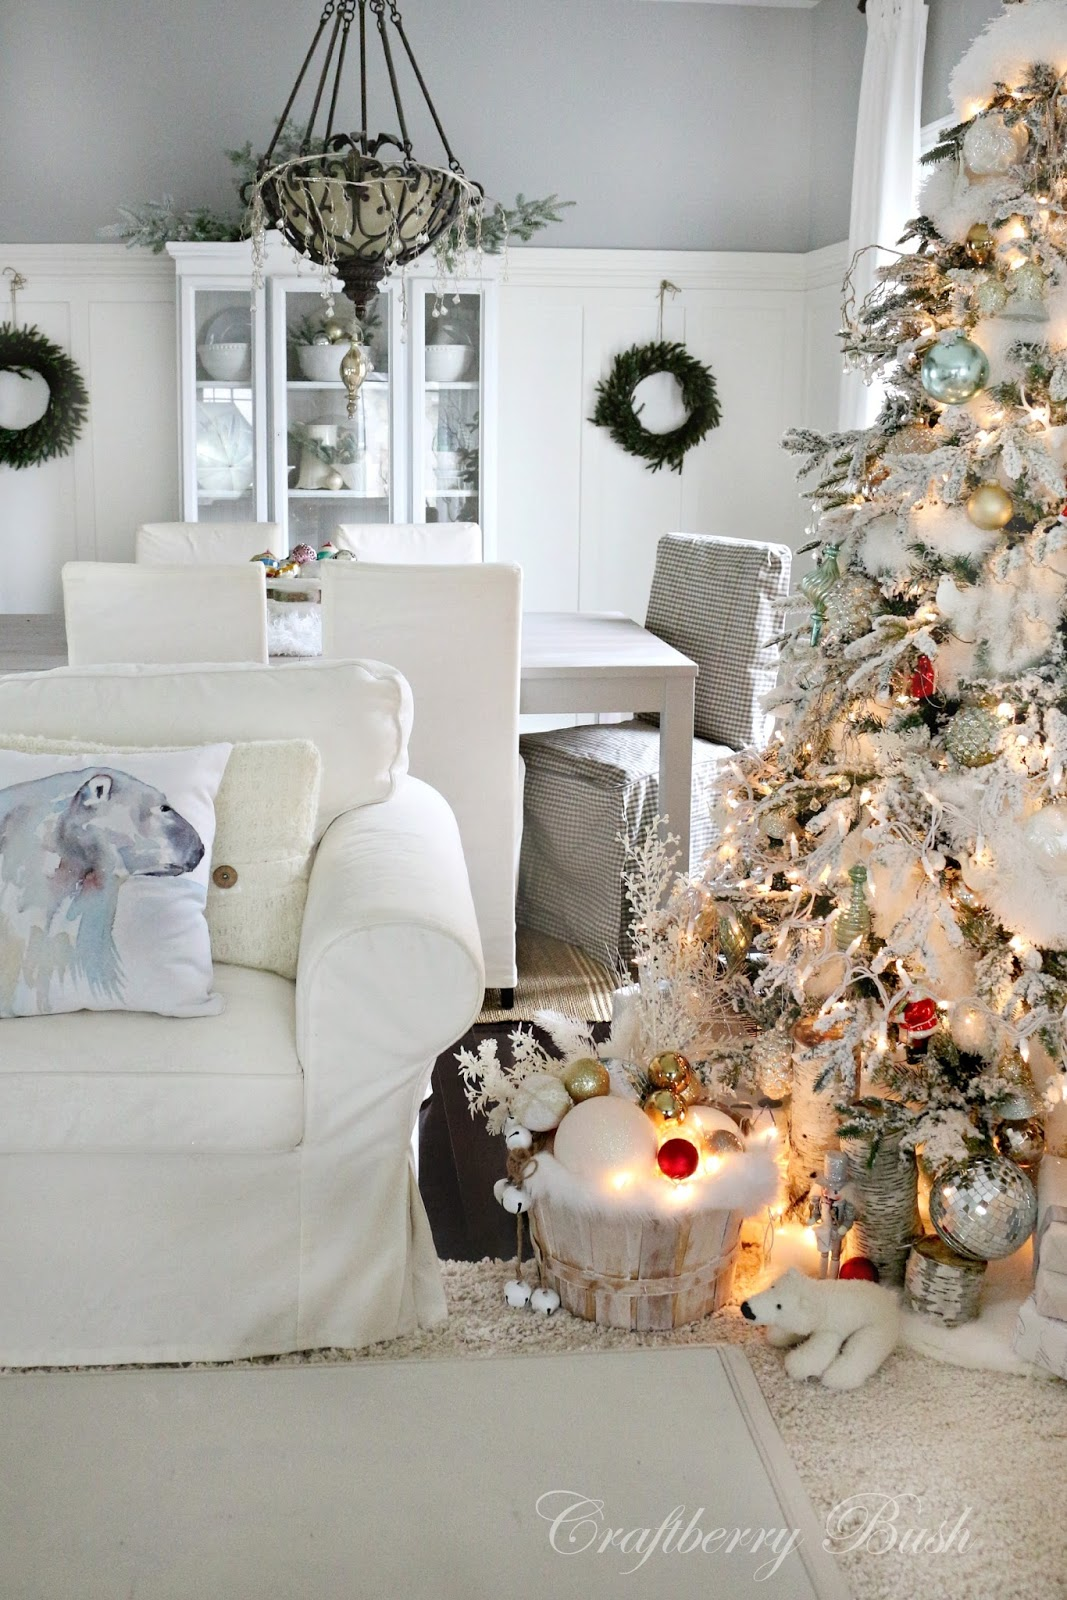 Decorating Ideas > Christmas Home Decor Ideas  The 36th AVENUE ~ 013736_Christmas Design Ideas Home